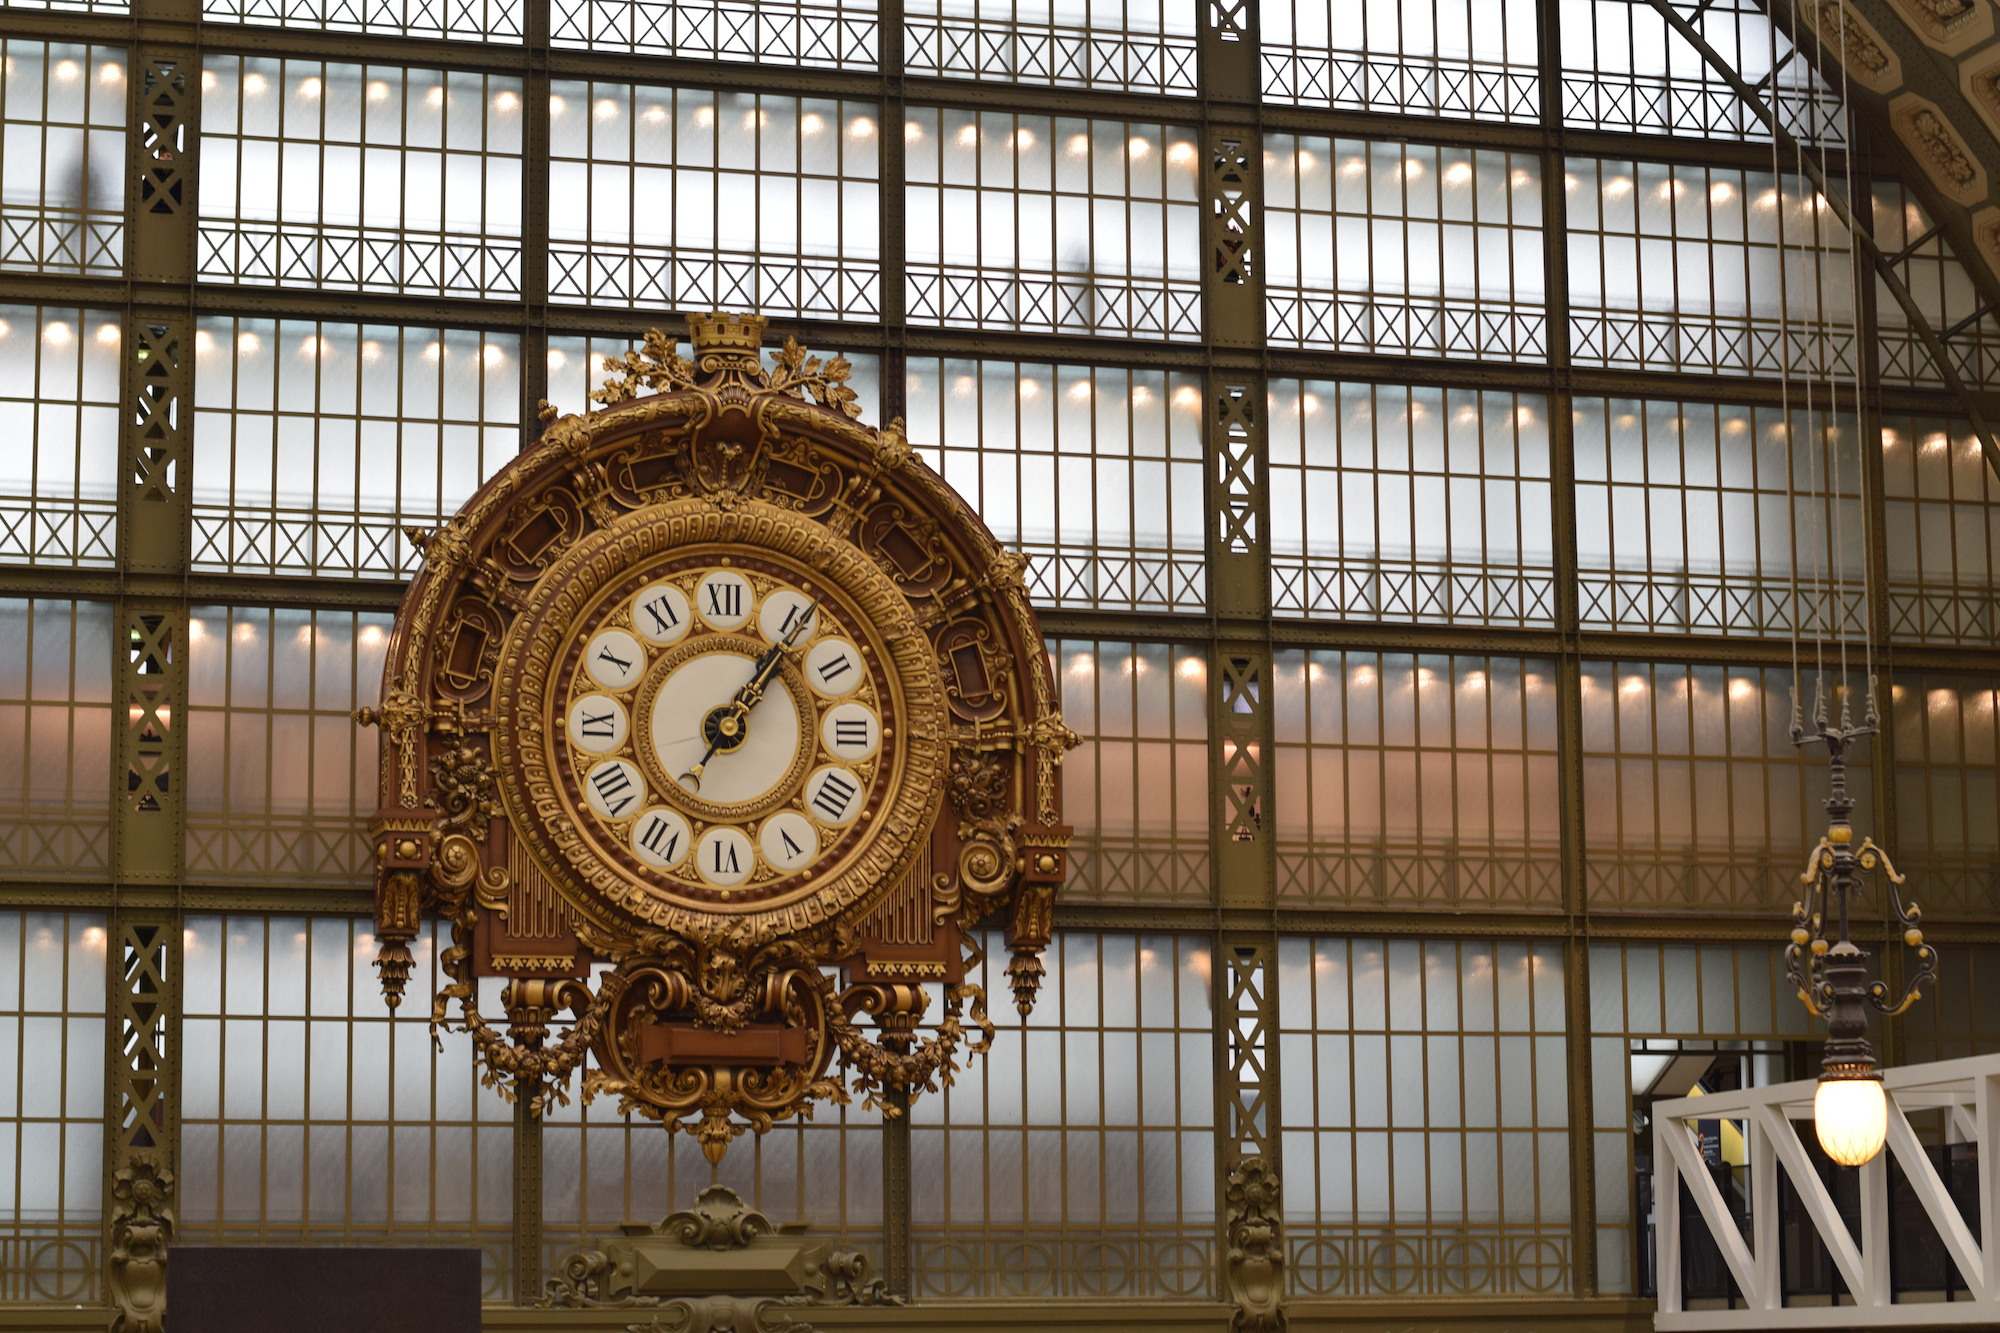 The clock in Musee D'Orsay, Paris.